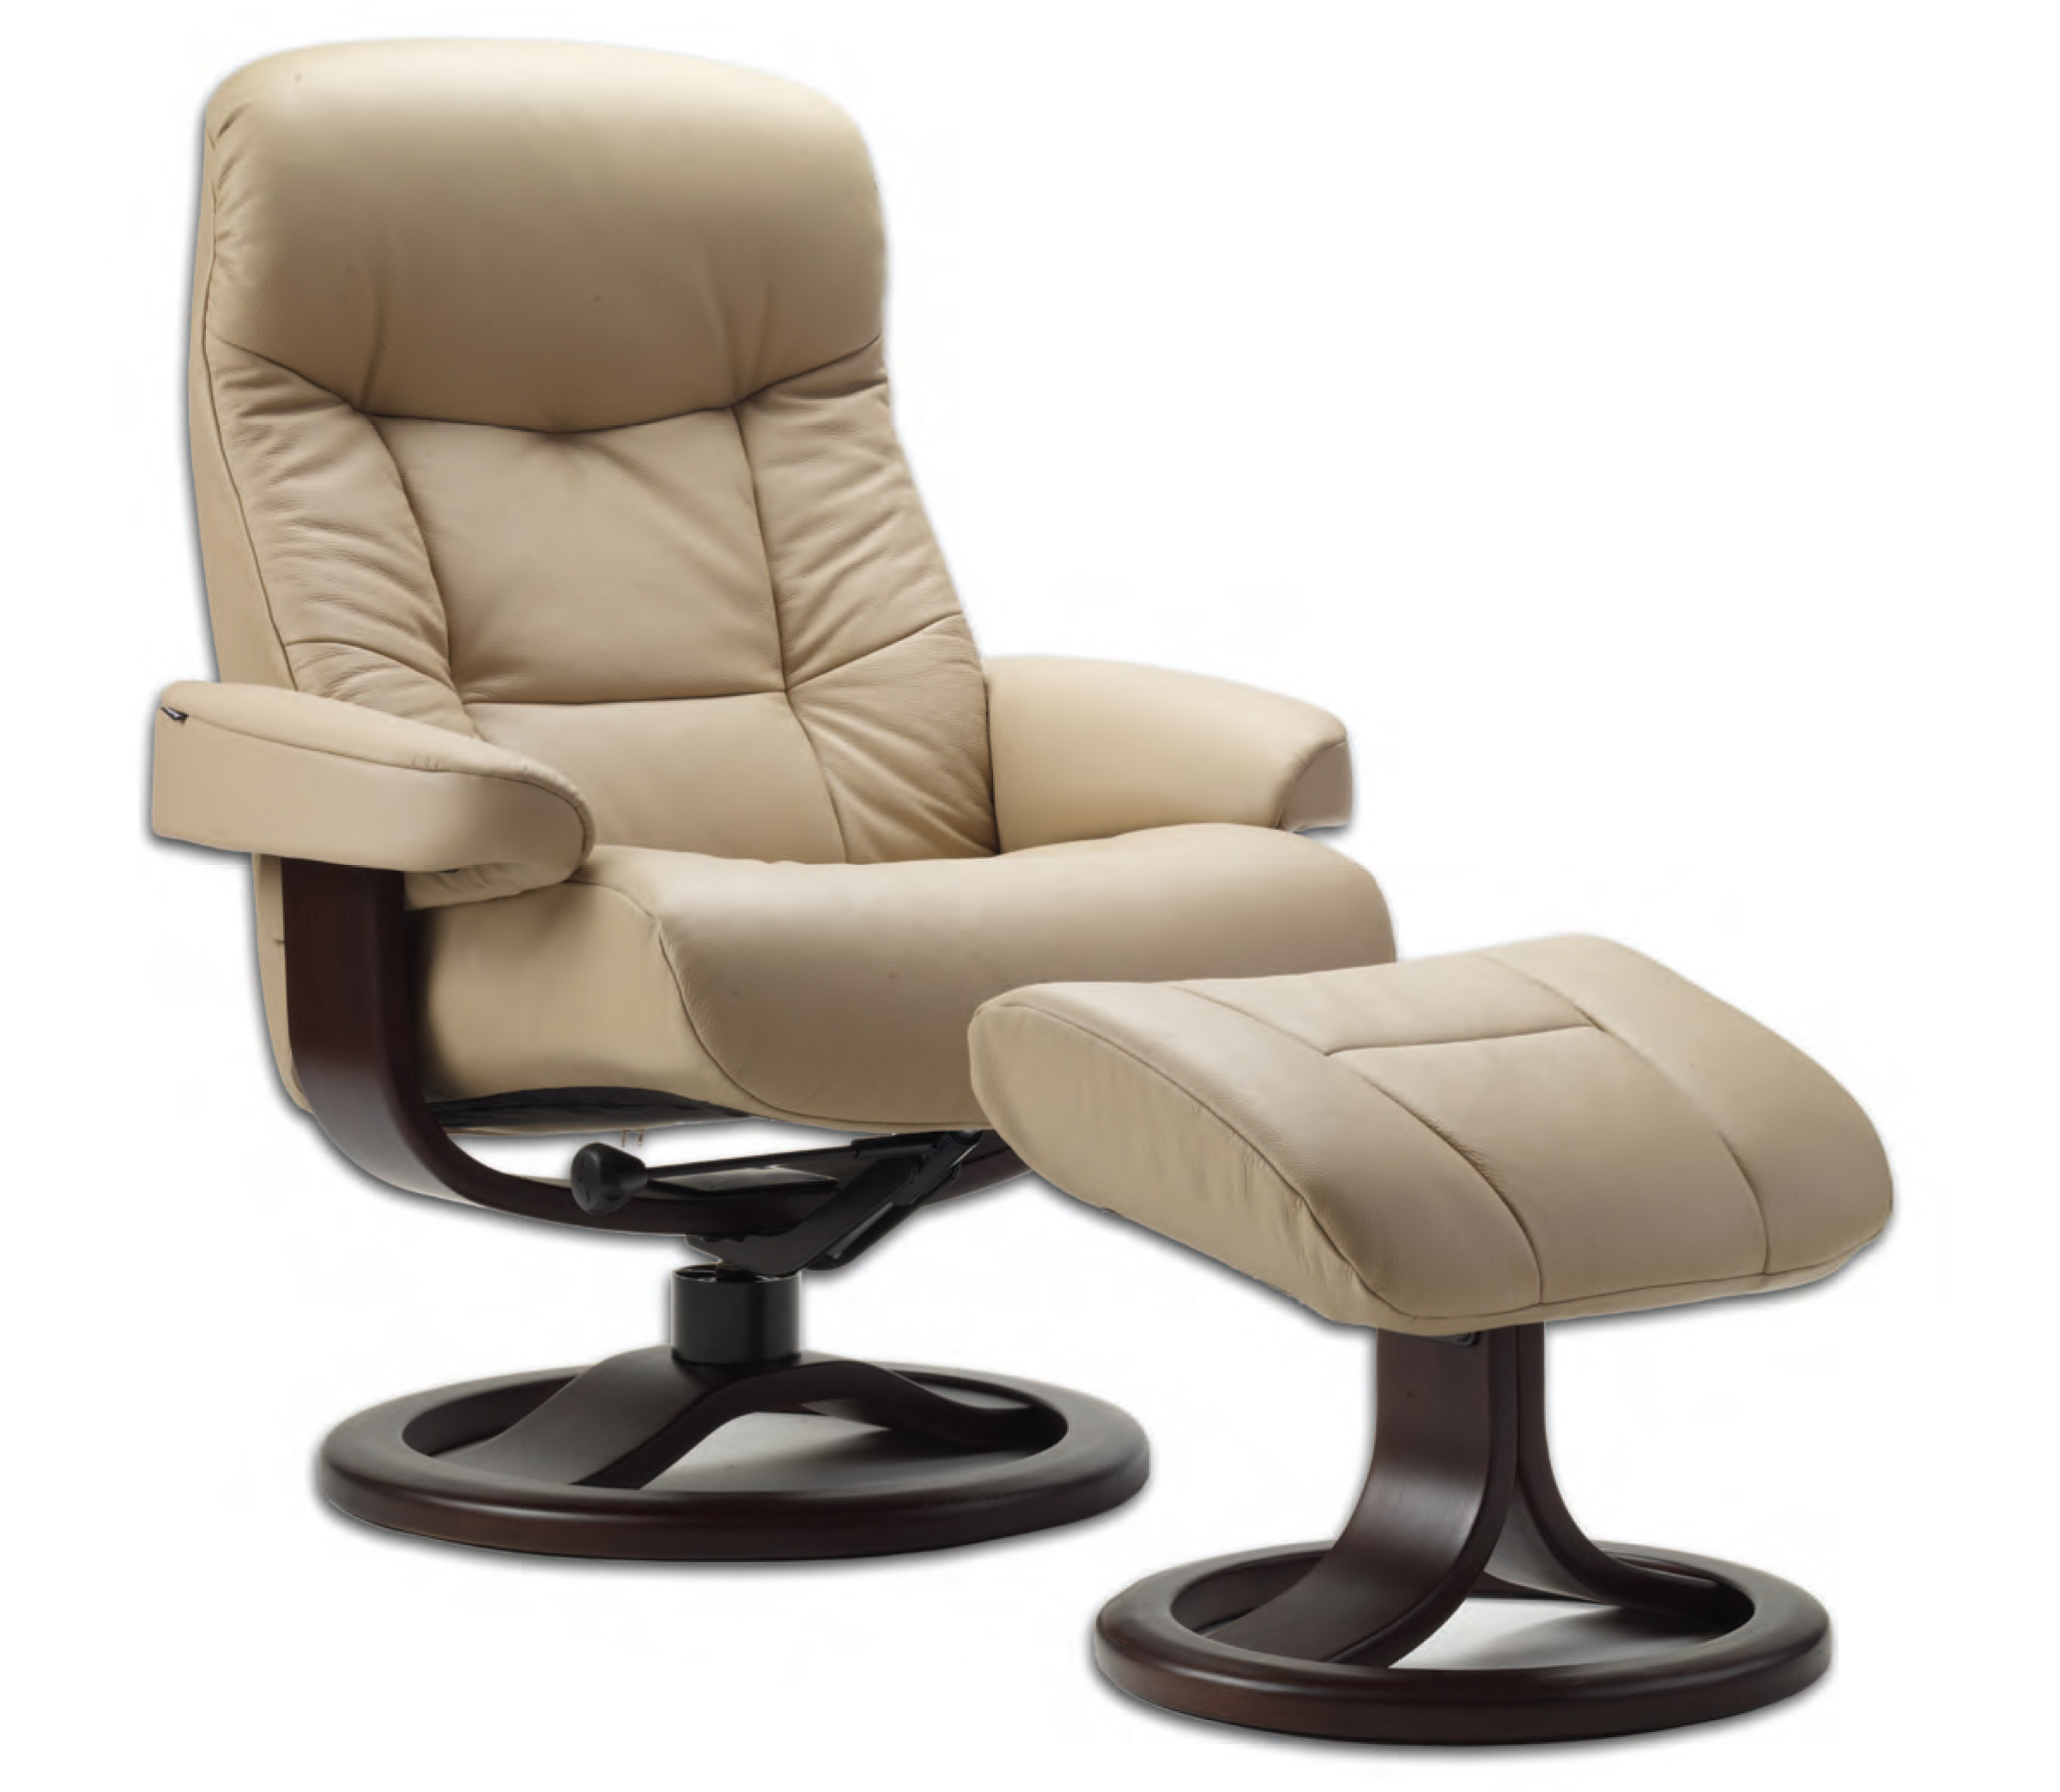 Scandinavian Chair Fjords 215 Muldal Ergonomic Leather Recliner Chair